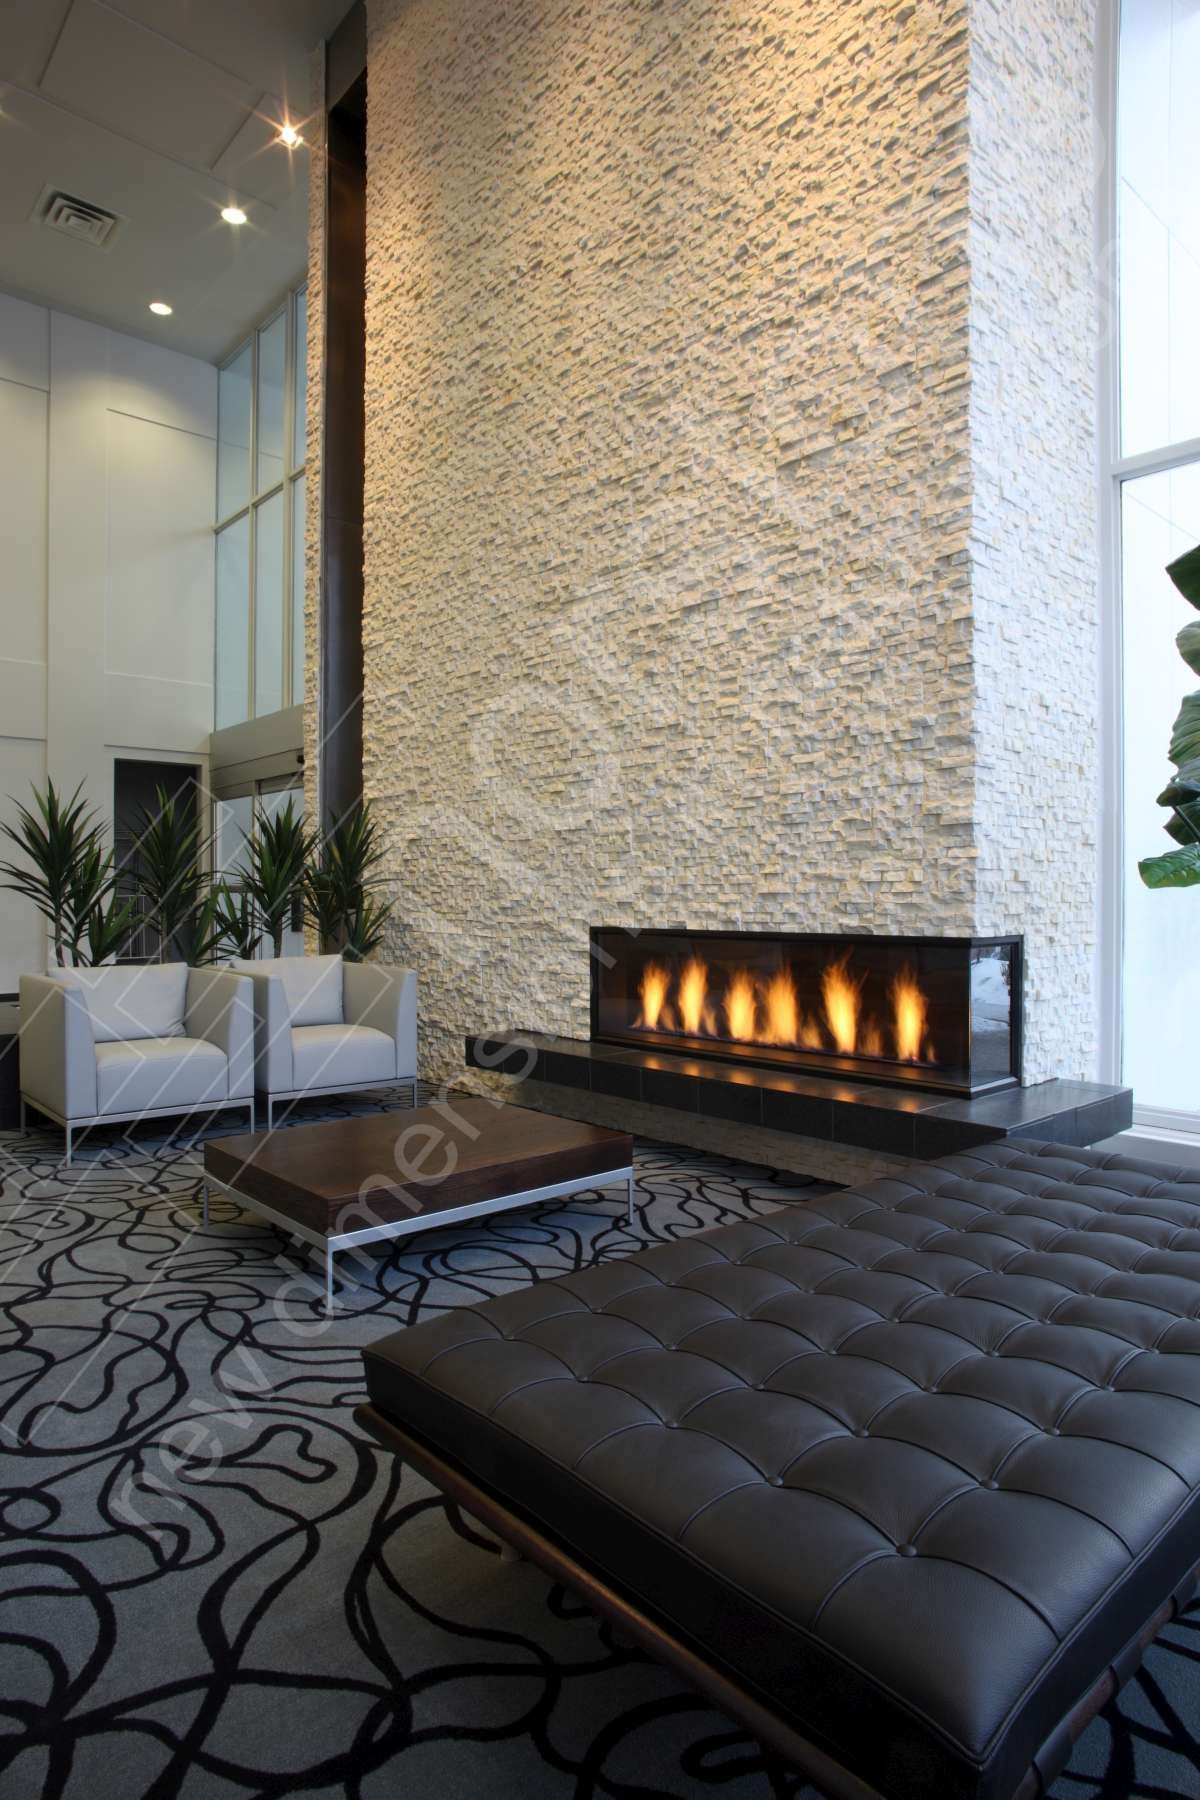 Remarkably Simple And Cost Effective Norstone Natural Stone Wall Tiles Offer High End Design And Styl With Images Modern Fireplace Stacked Stone Fireplaces Home Fireplace